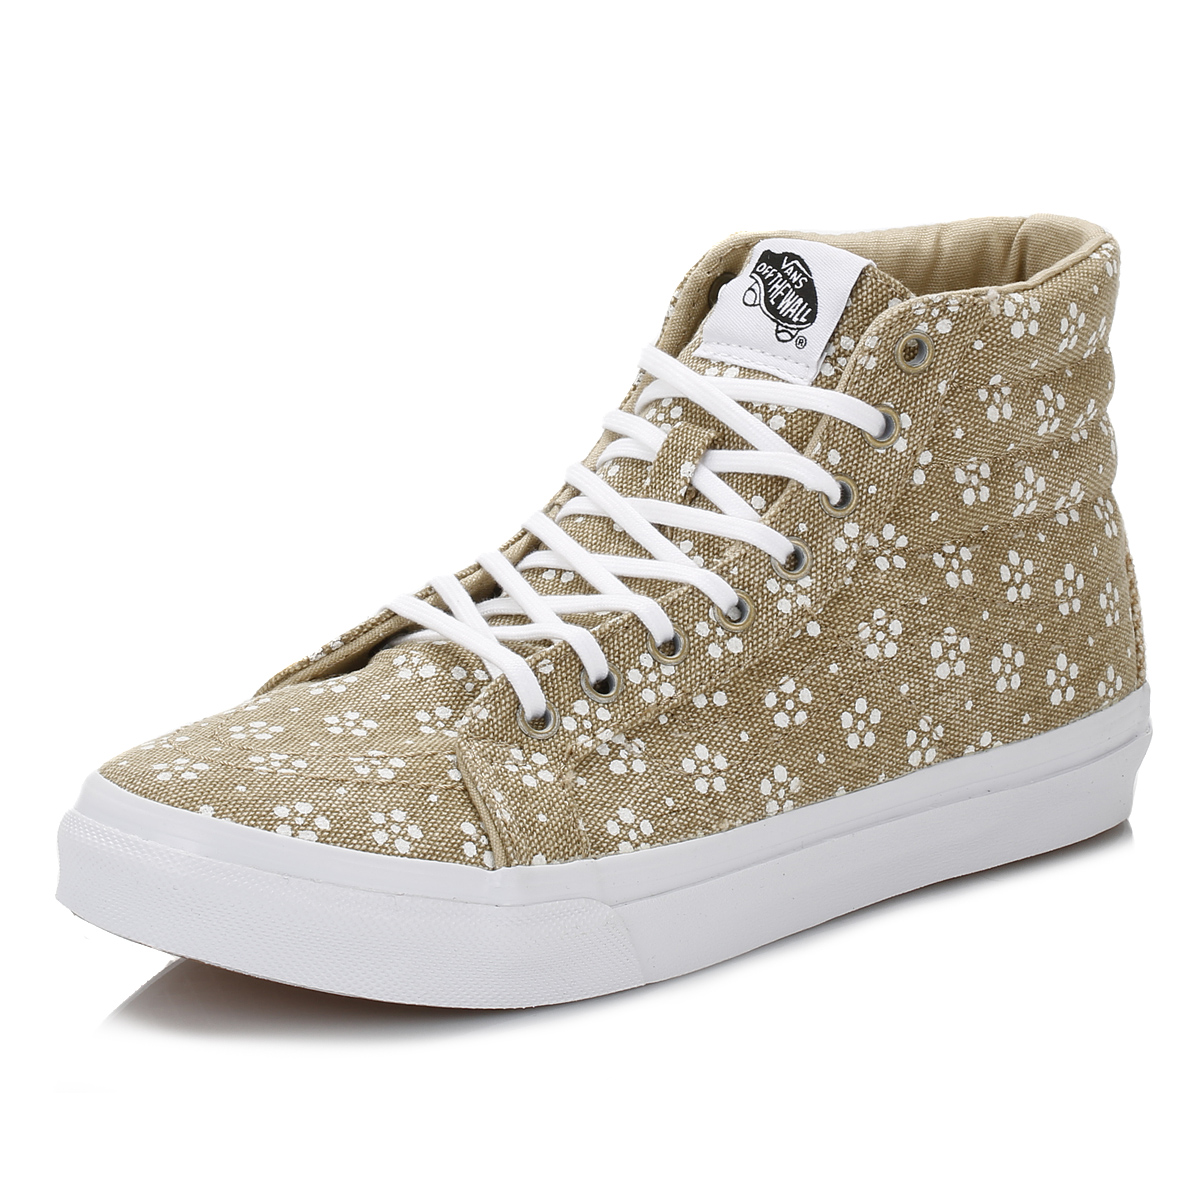 Vans Womens Trainers Leather/Suede SK8 High Tops Lace Up ...